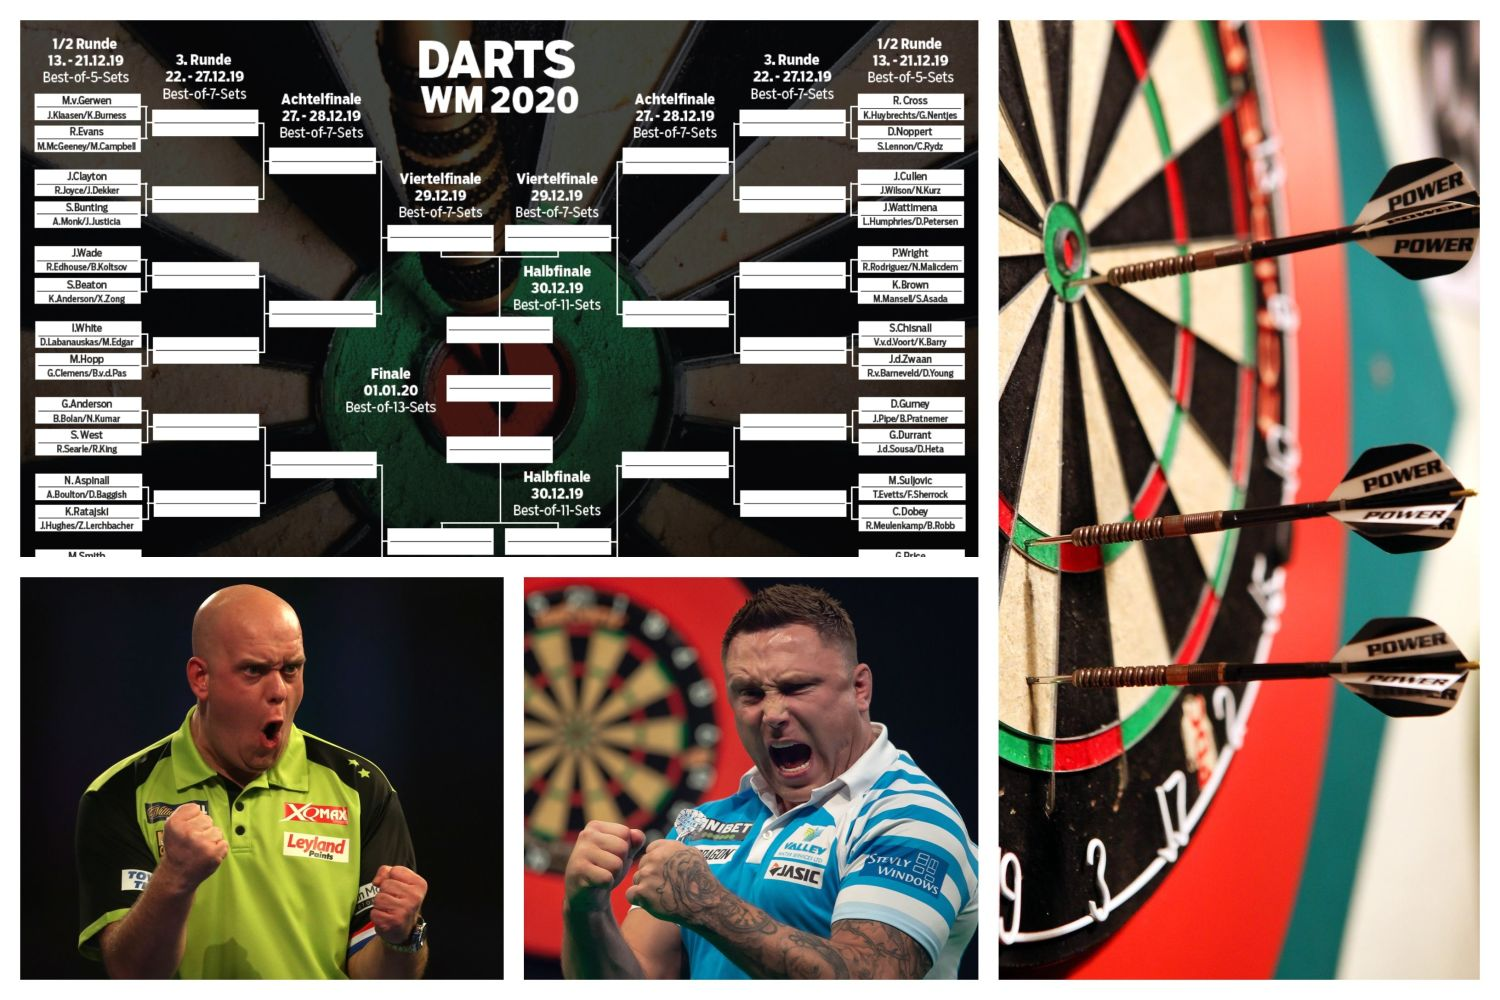 Tickets Dart Wm 2020